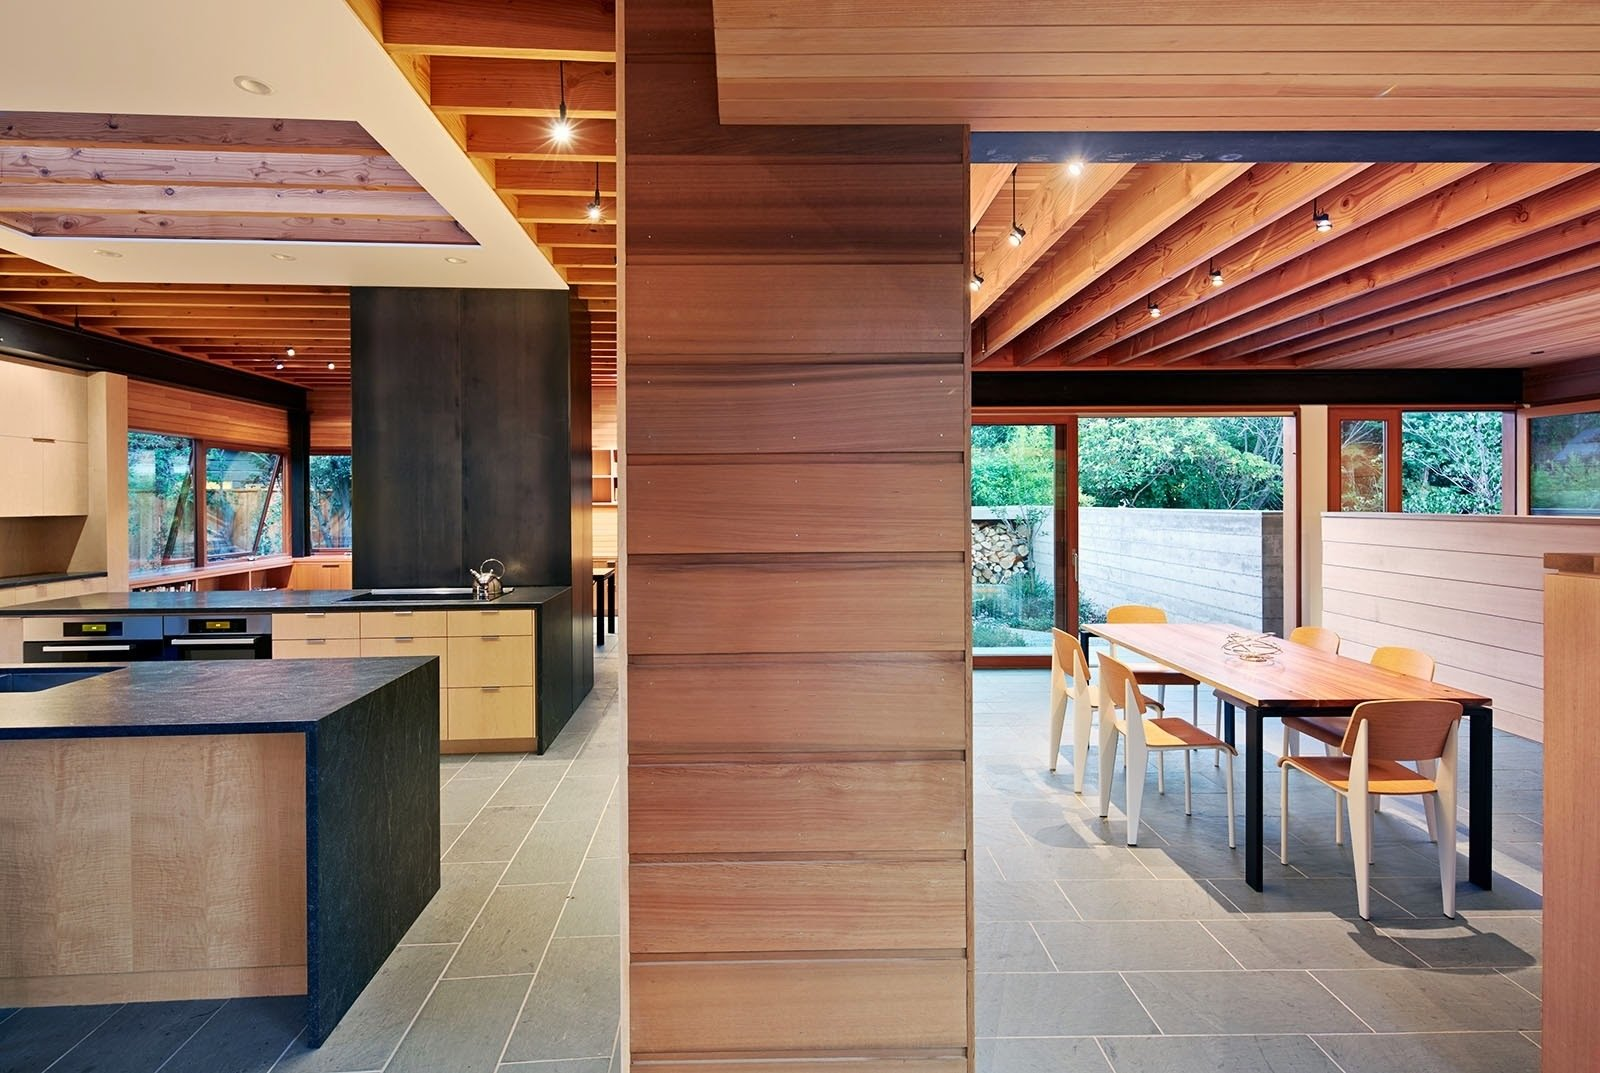 silicon valley smart home spiegel aihara workshop interior